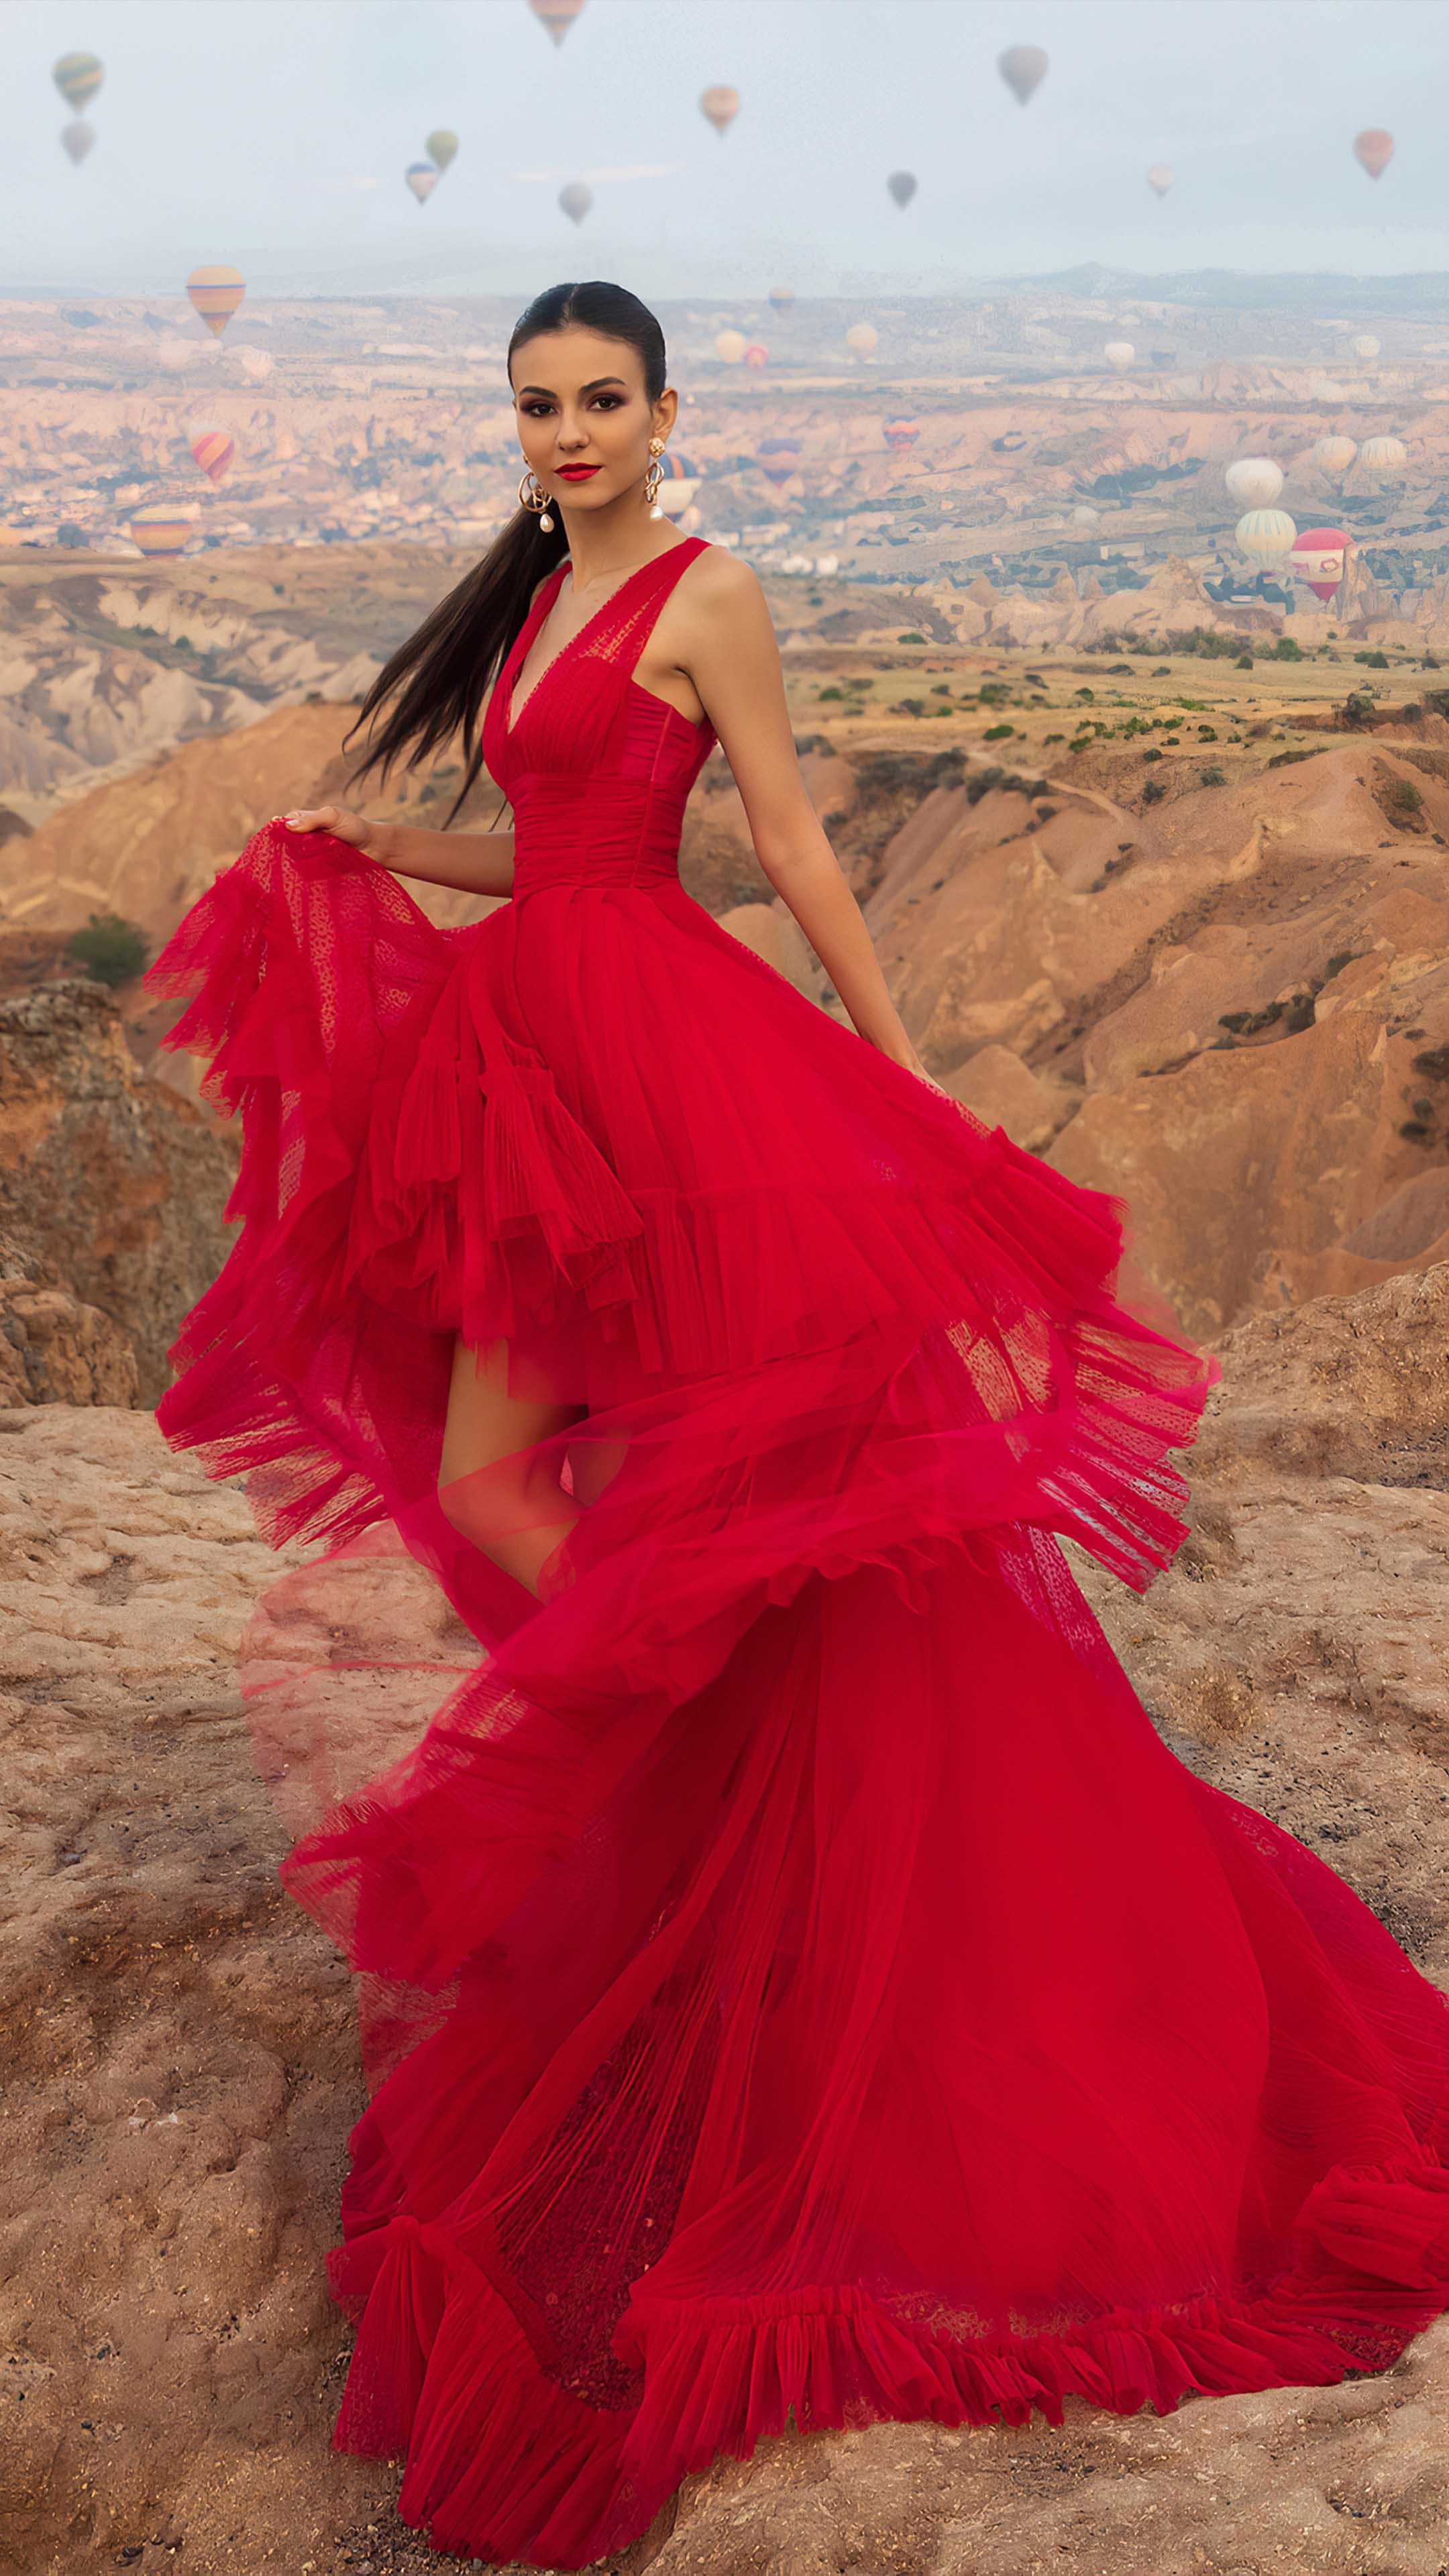 Victoria Justice In Beautiful Red Dress 4K Ultra HD Mobile Wallpaper